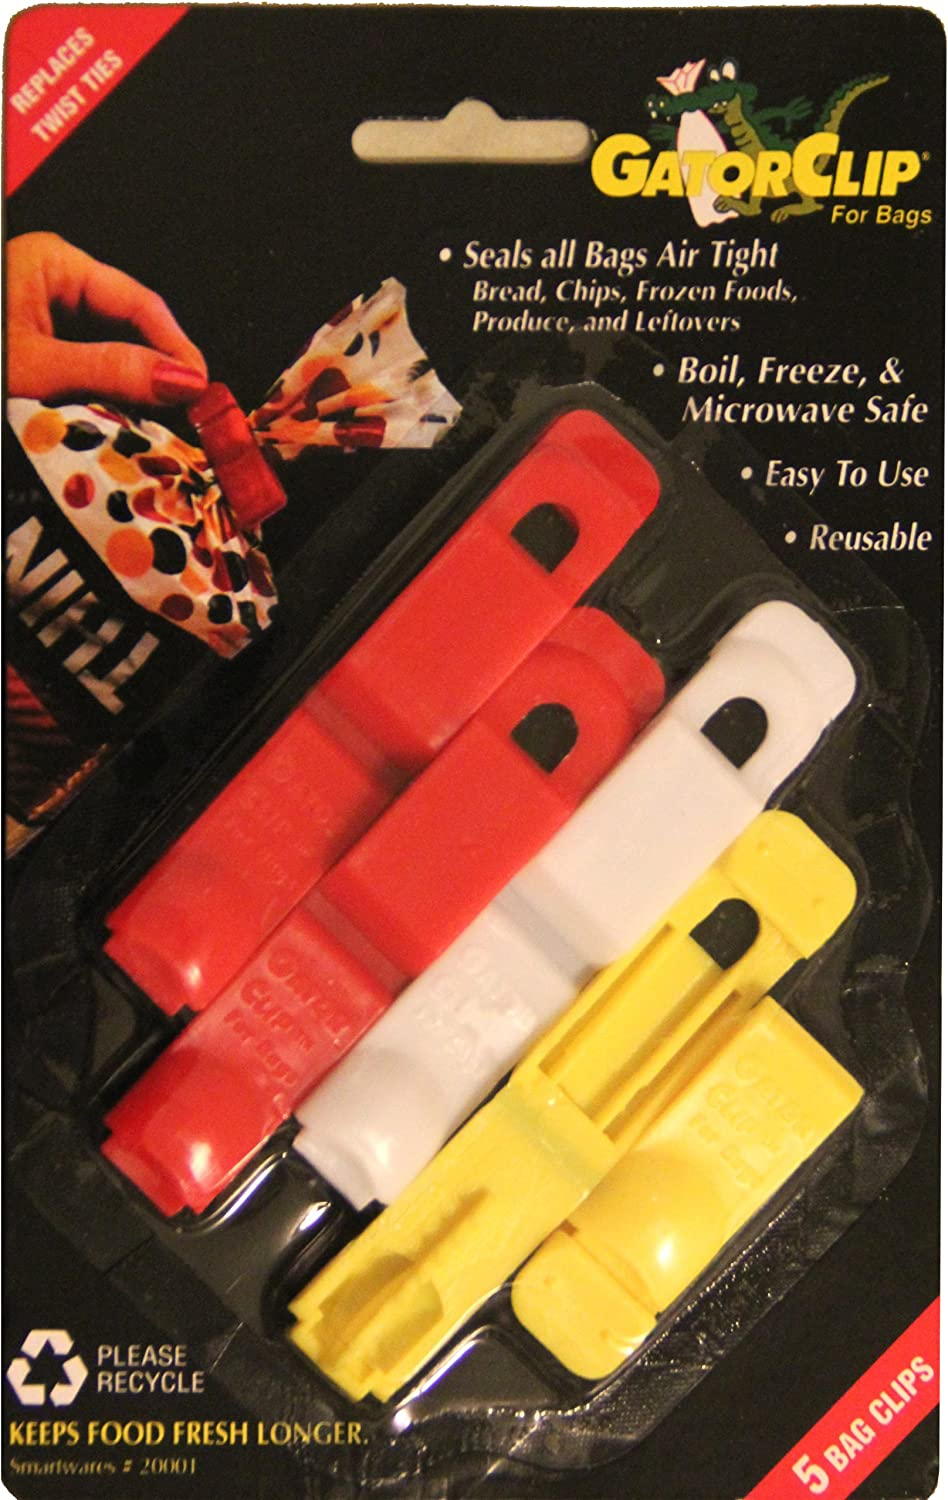 Smartwares Original Gatorclip Bag Clip Twist Tie Replacement, Assorted2 Red, 1 White and 2 Yellow, 2 inch